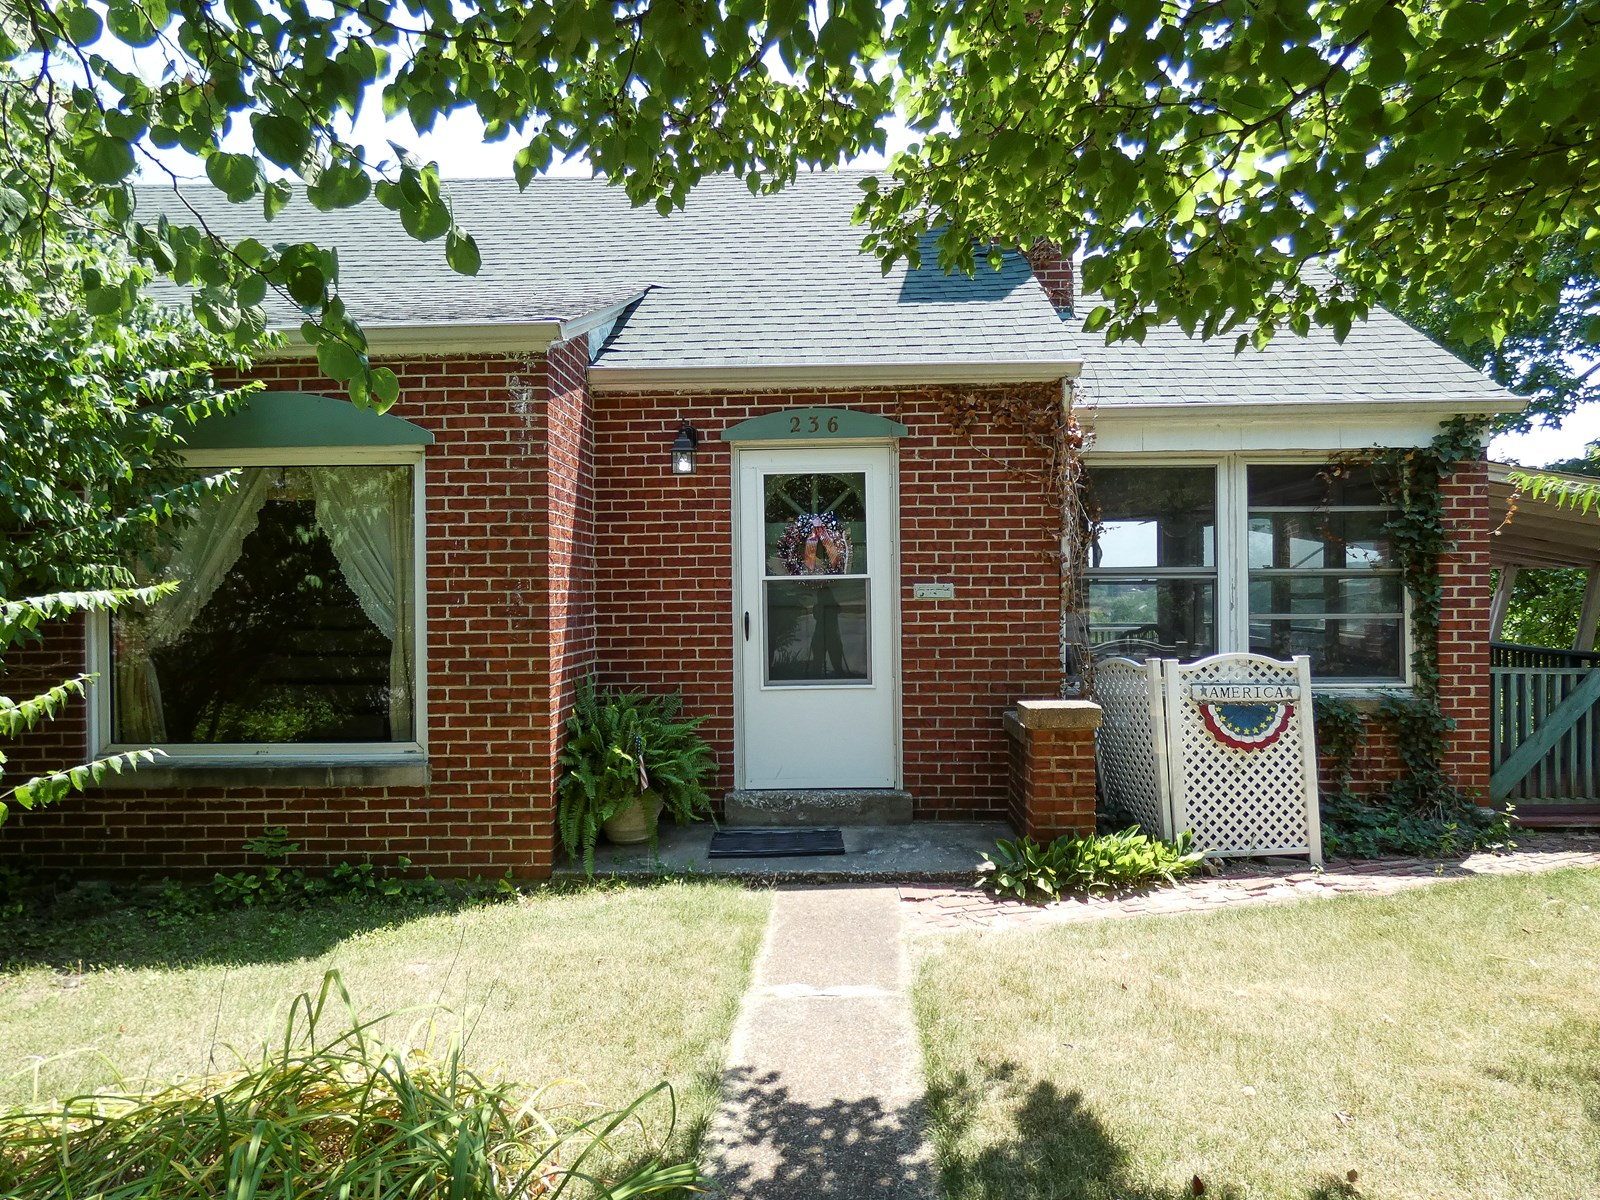 Fifties Style Home For Sale in Hermann, Missouri